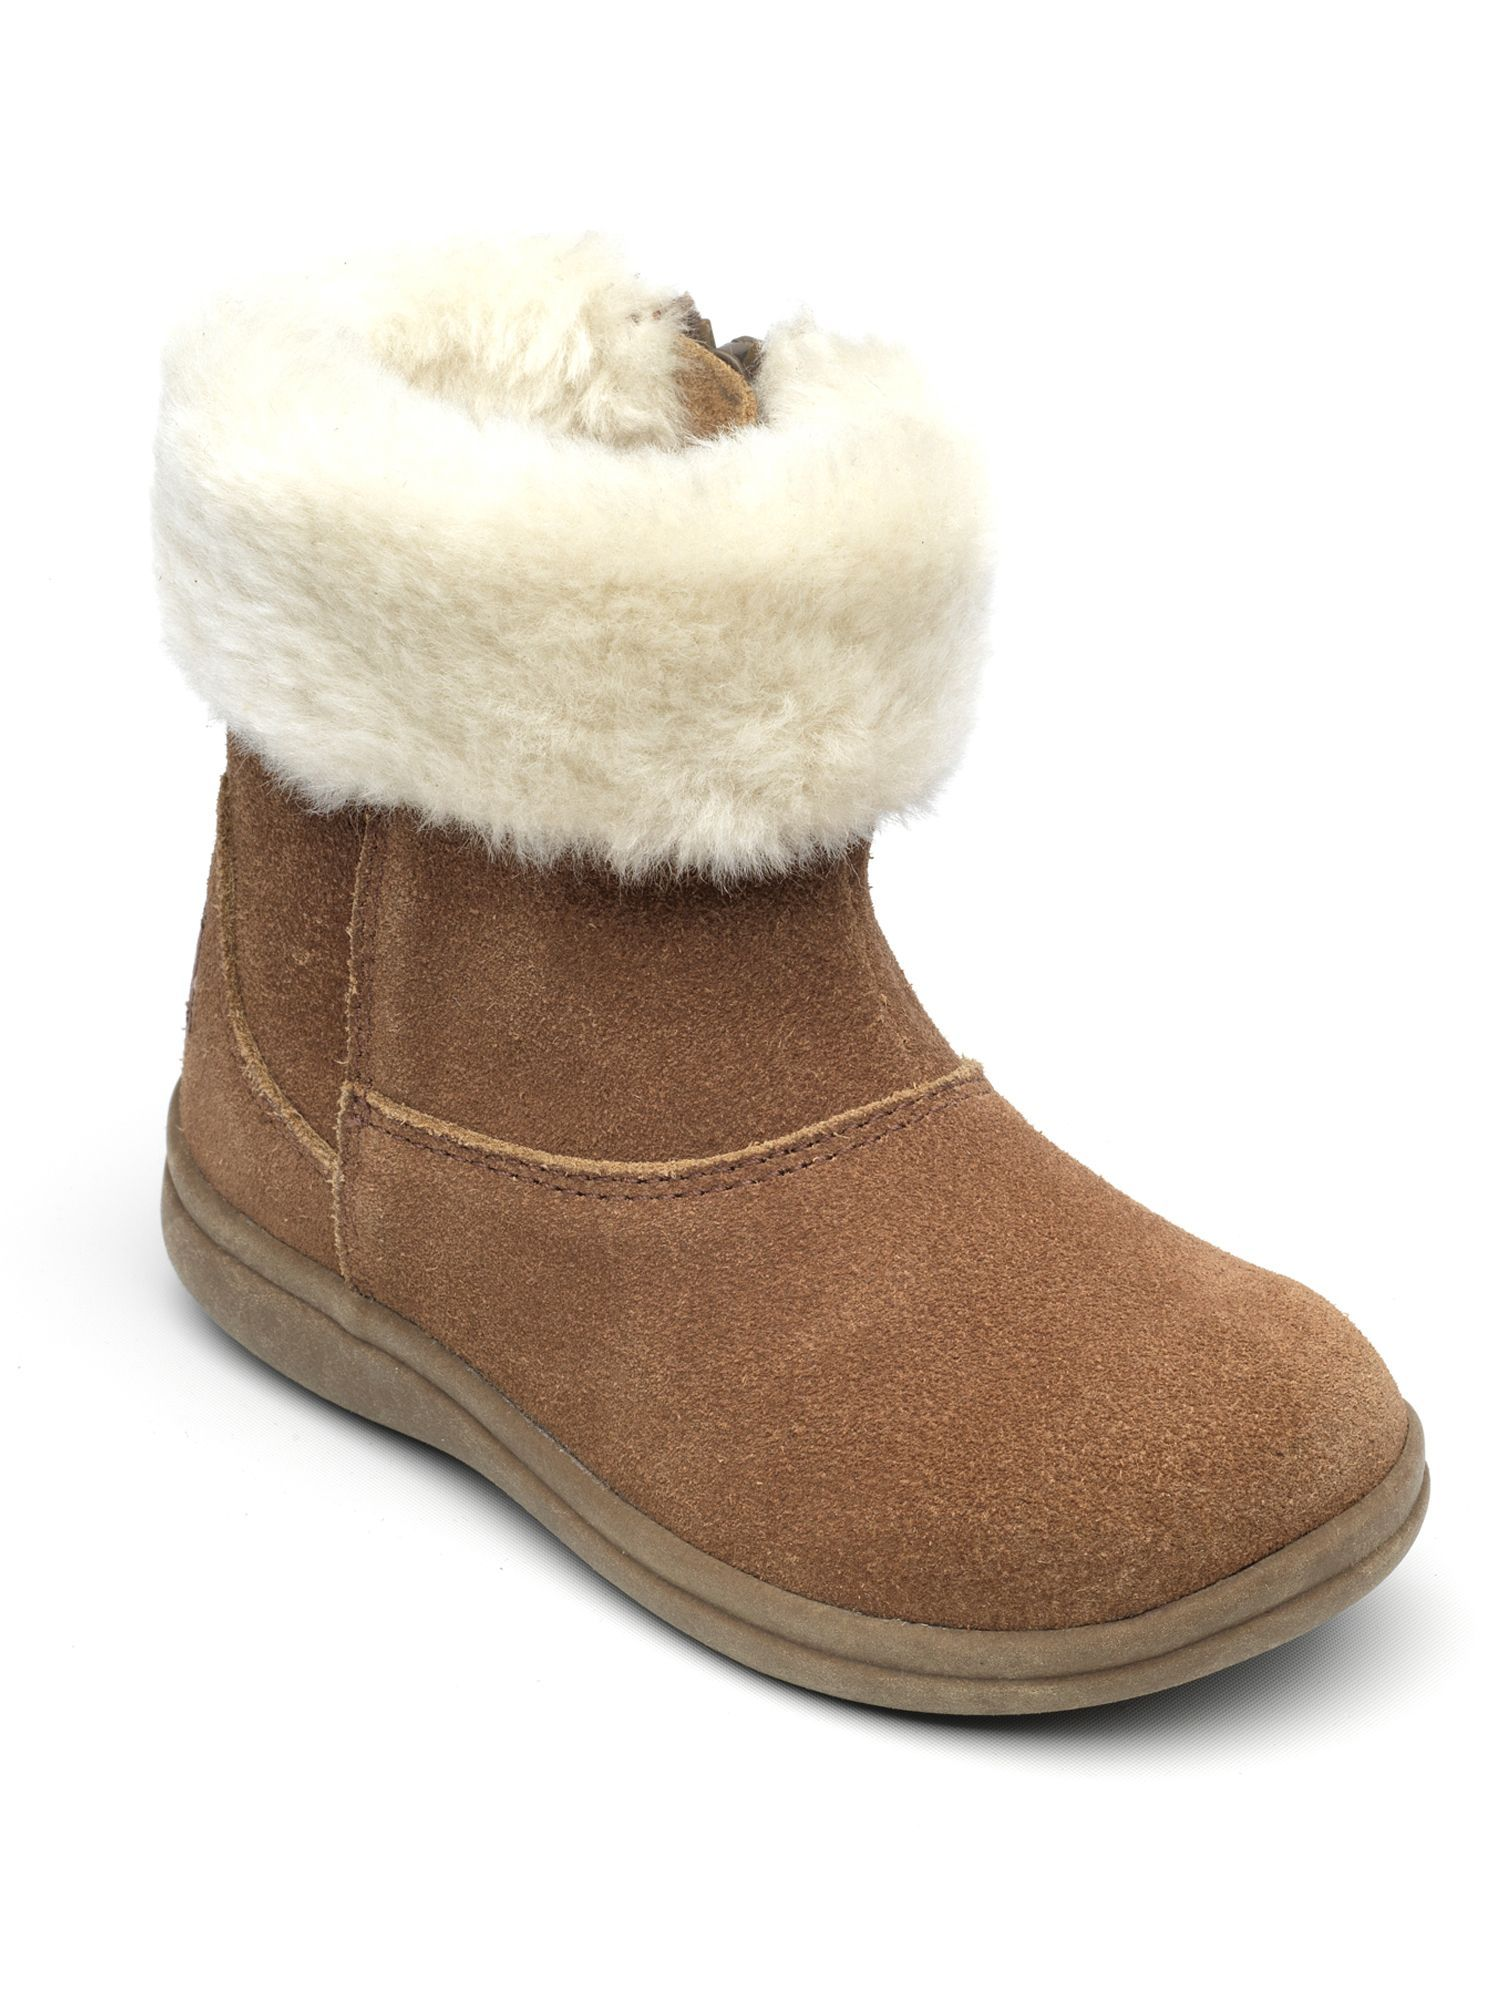 303fcb4c Chipmunks Girls Alaska tan suede boot, Brown | Kids Shoes | Boots ...